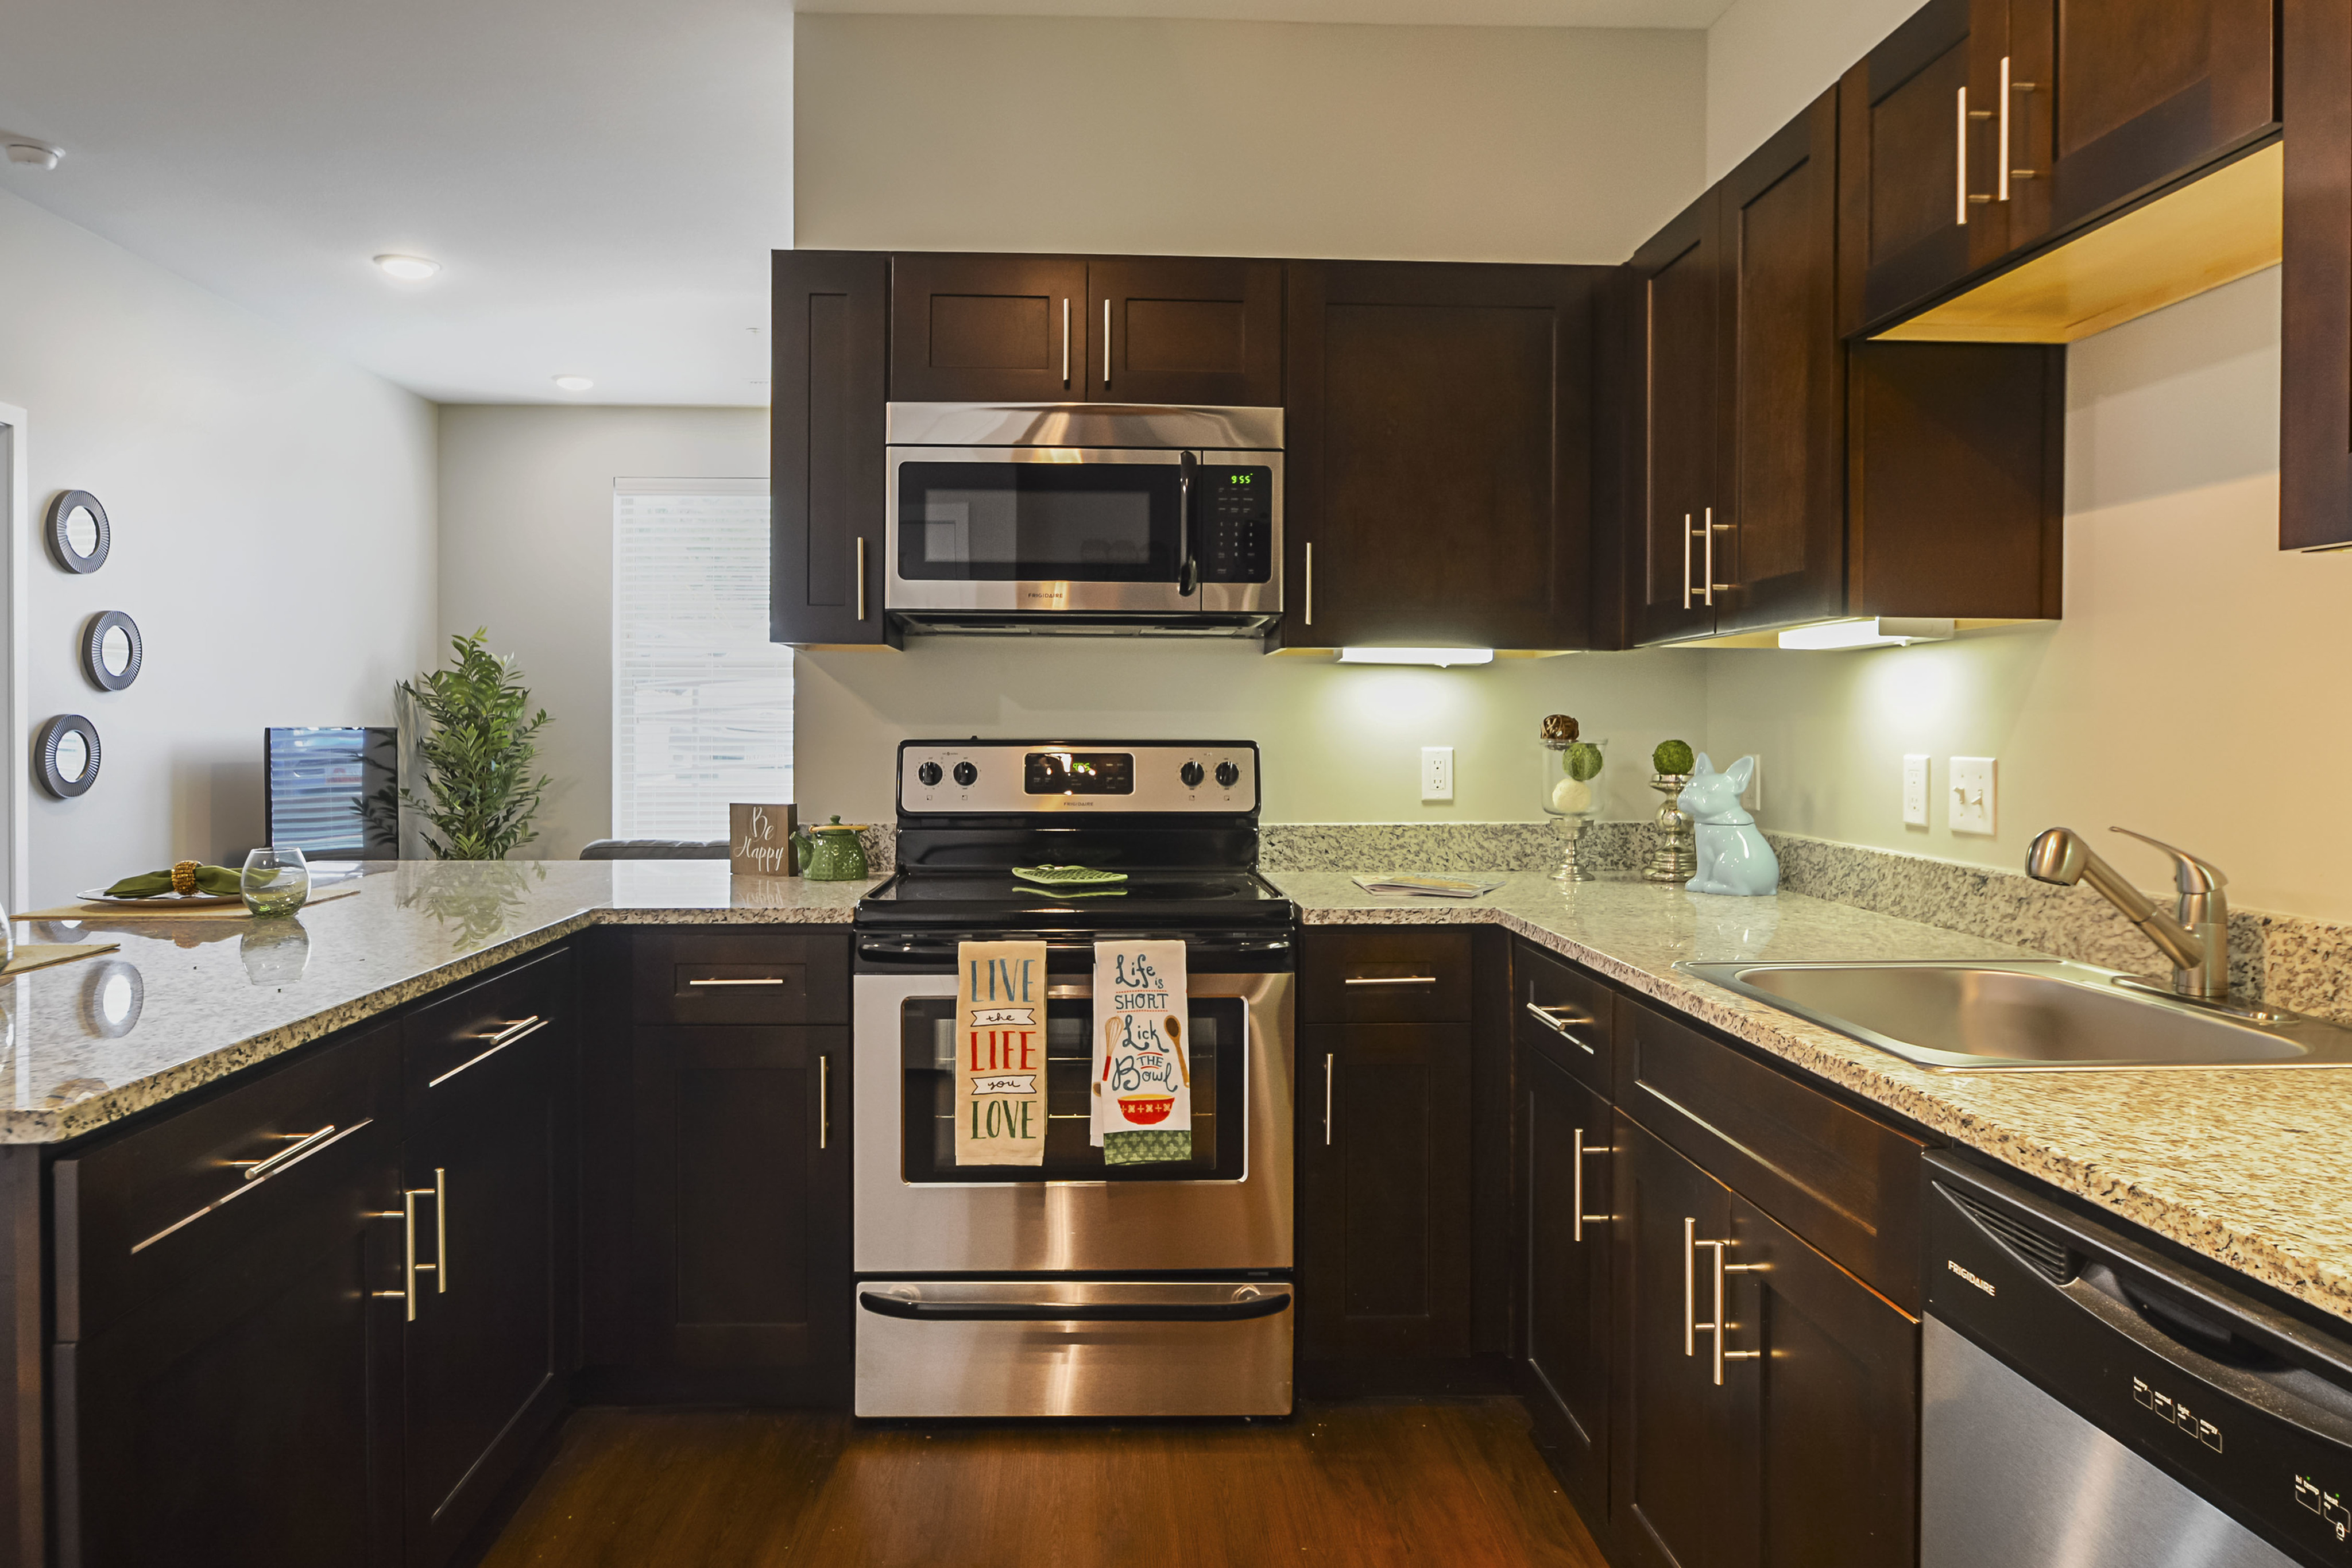 Image of Stainless Steel Appliances for Lookout on Cragmor